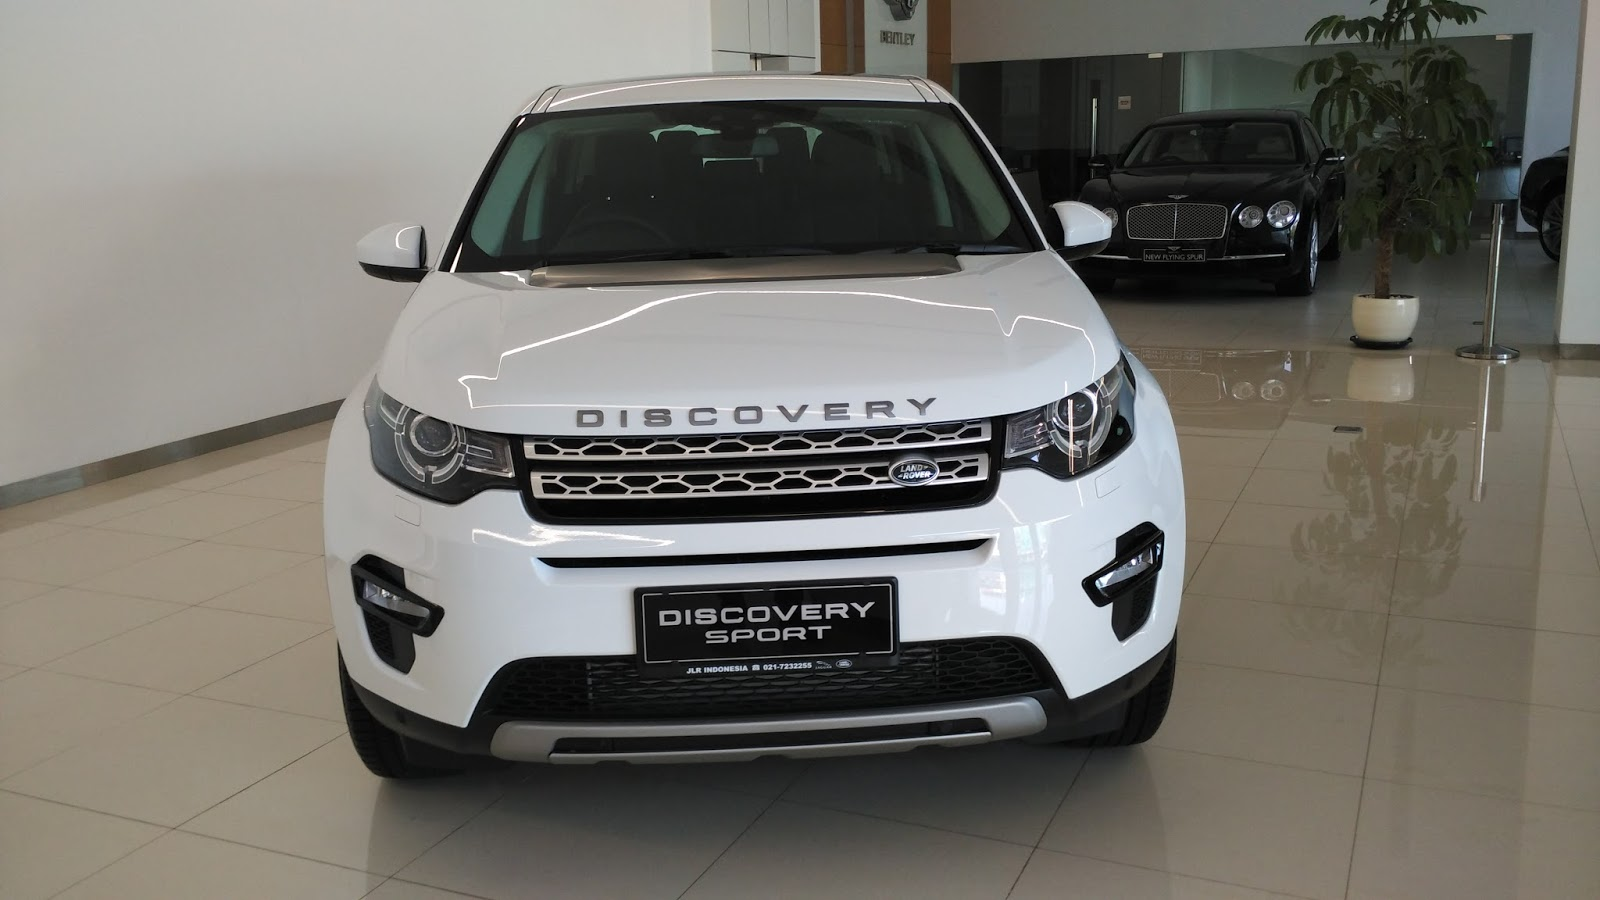 RANGE ROVER: LAND ROVER DISCOVERY SPORT 2015 ATPM JAGUAR LAND ROVER